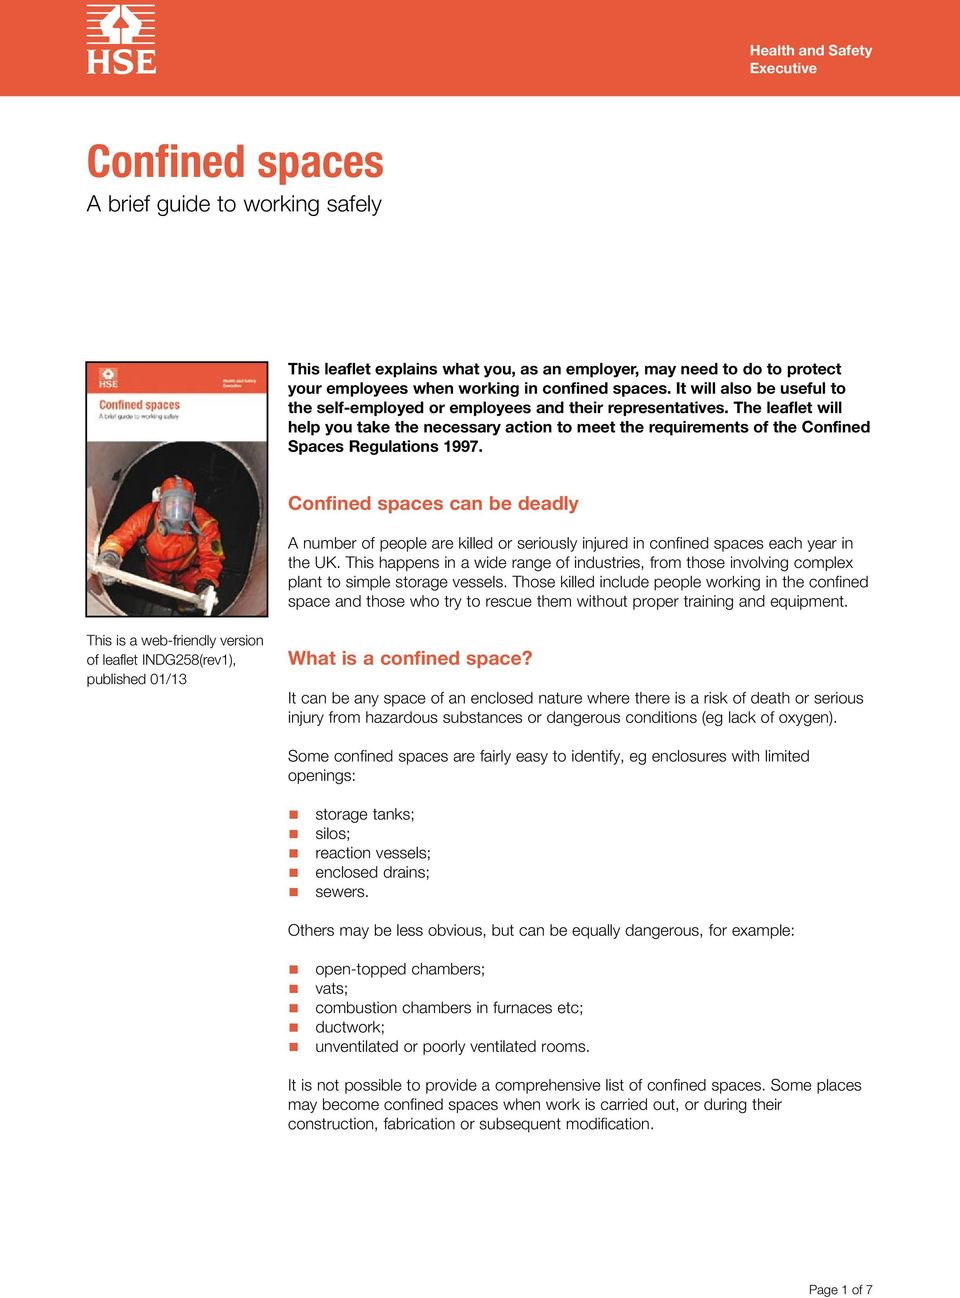 The leaflet will help you take the necessary action to meet the requirements of the Confined Spaces Regulations 1997.